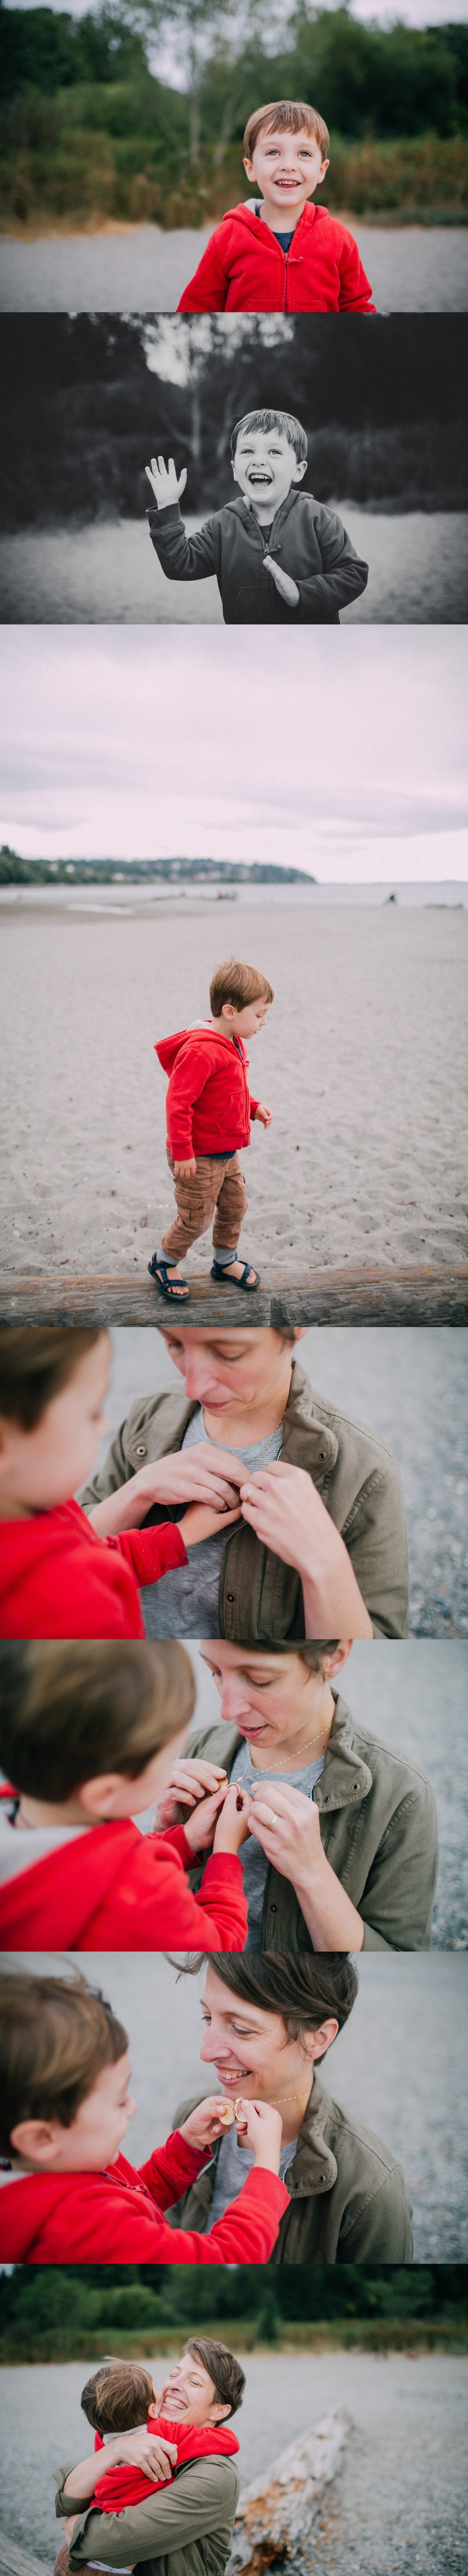 casual family lifestyle photography seattle carkeek session-6.jpg